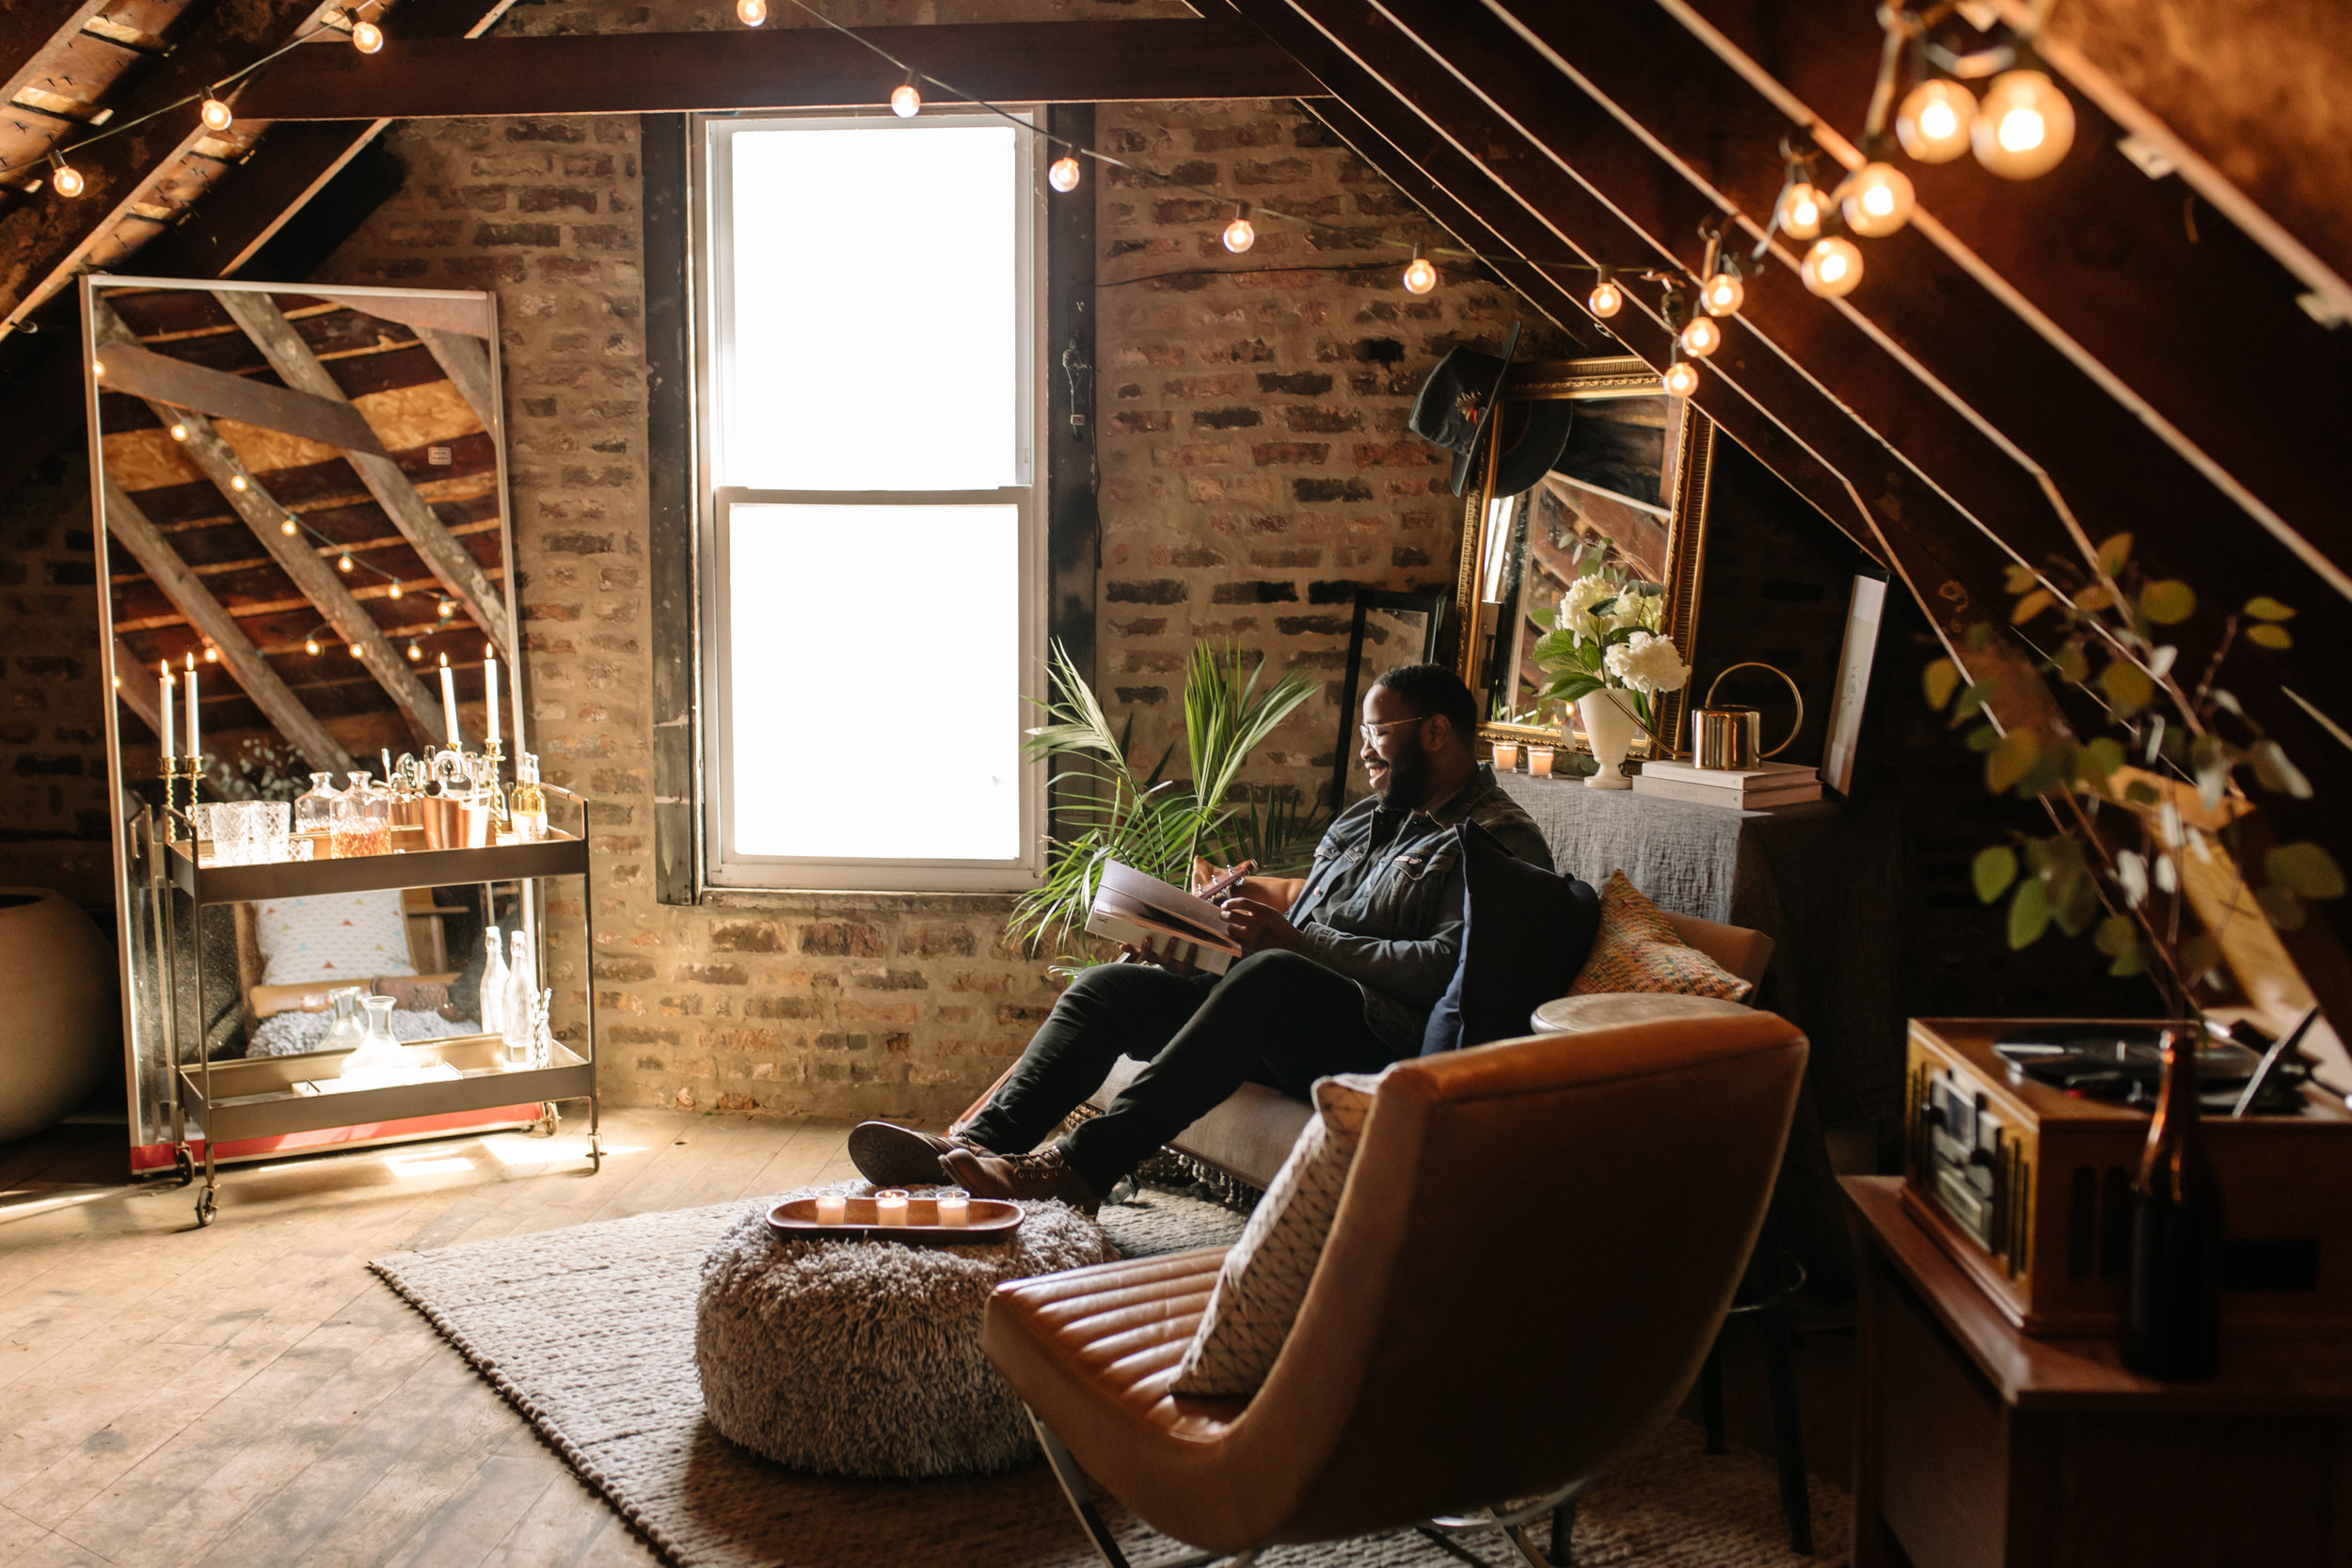 Cozy vibes on deck. Photo by Jesse Schroeder.